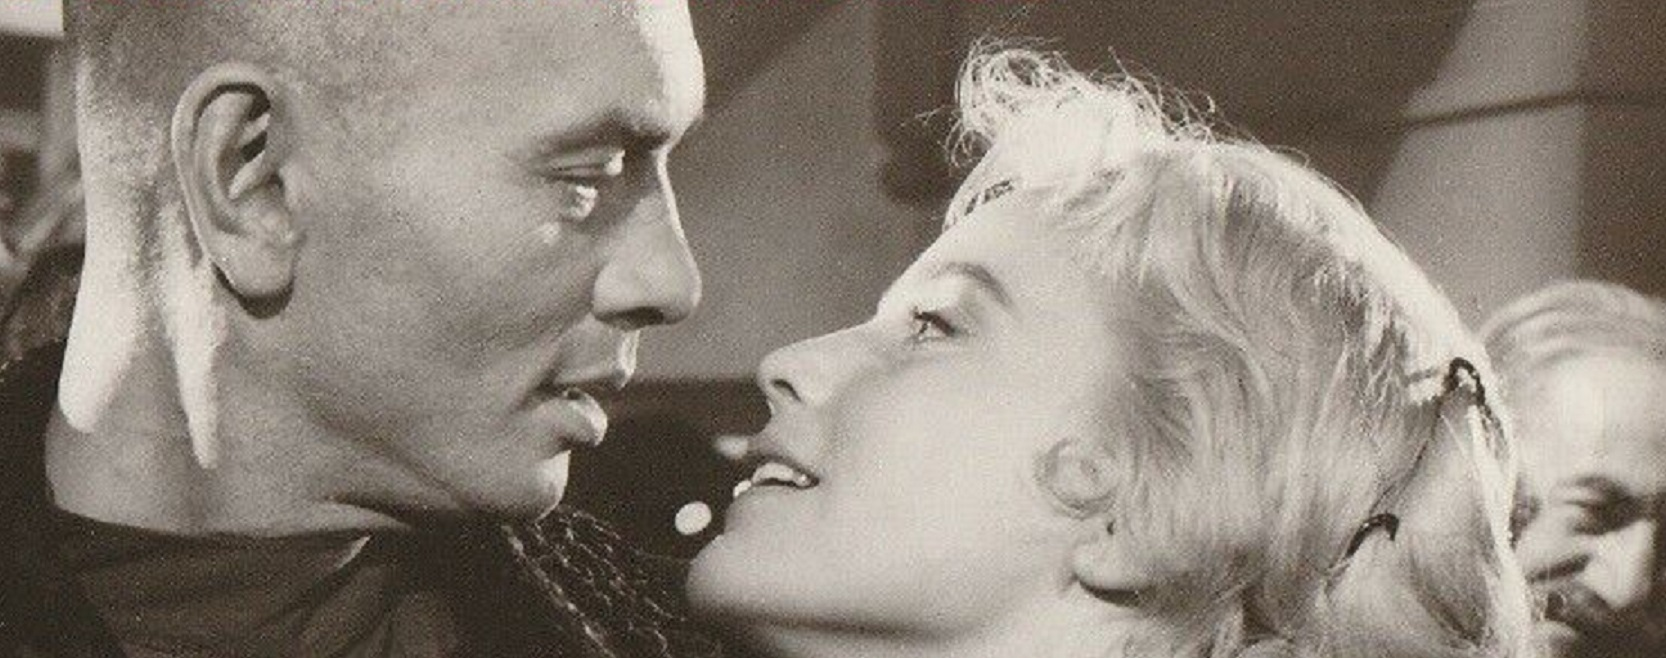 Yul Brynner and Maria Schell in The Brothers Karamazov (1958)